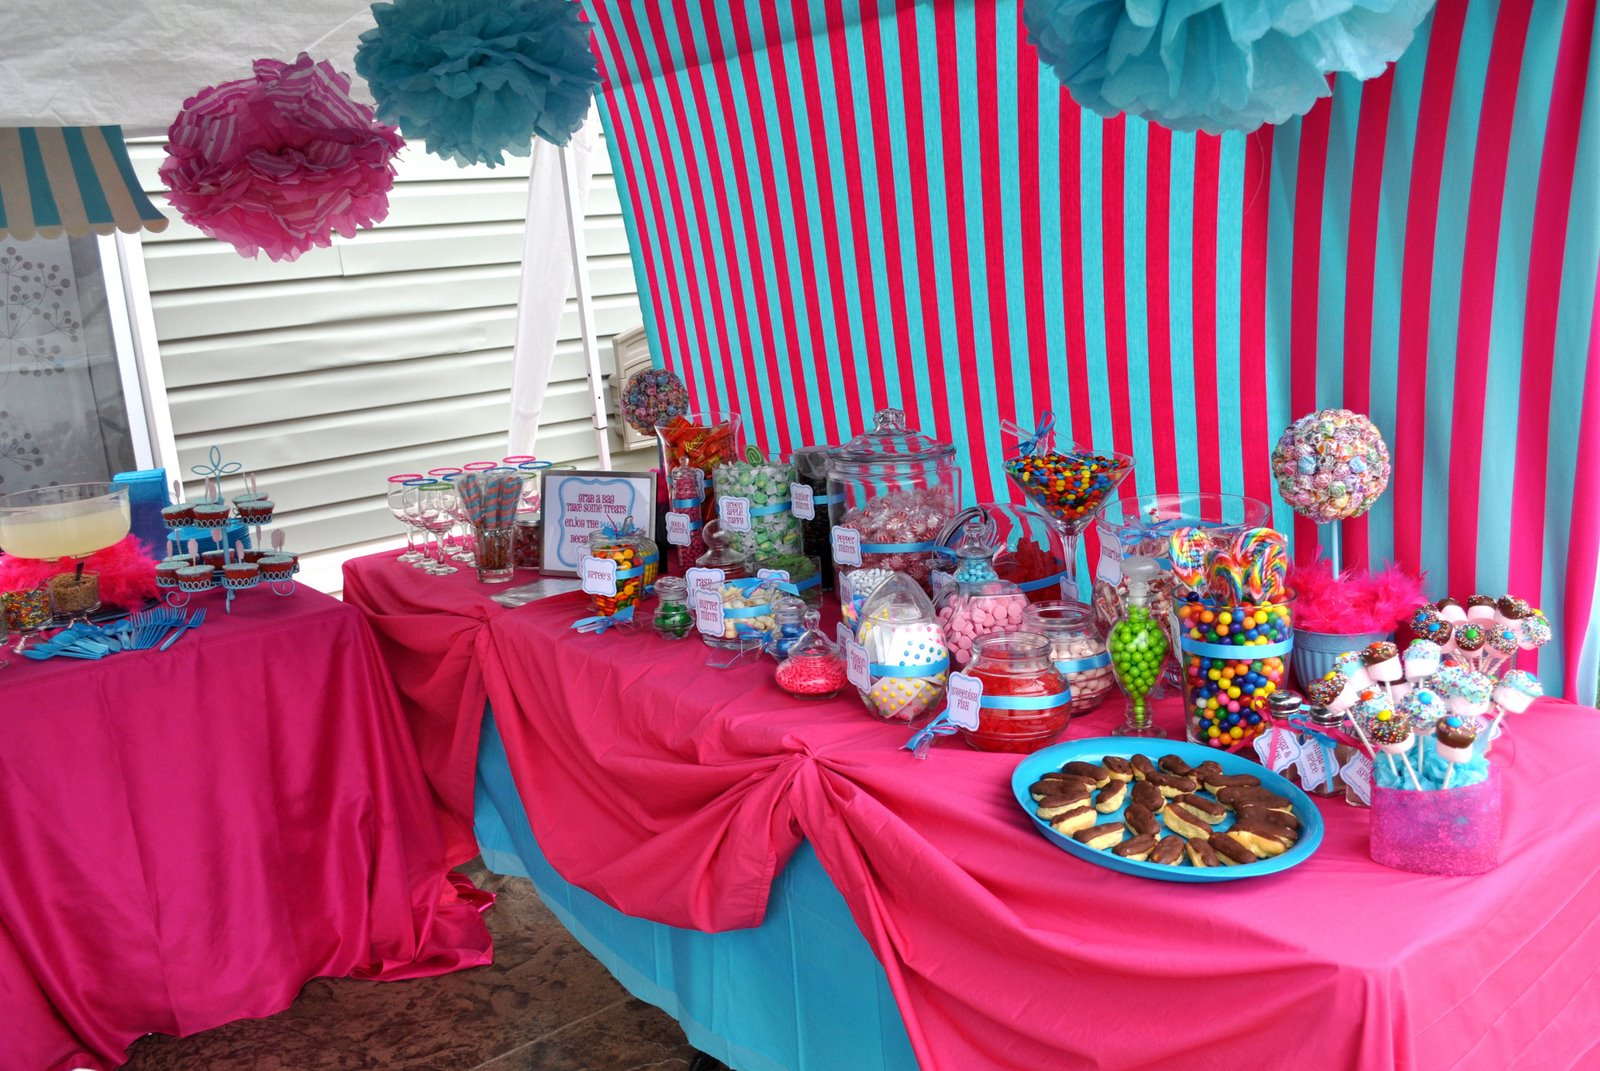 Masquerade party ideas candy buffet dollar store crafts Table decoration ideas for parties